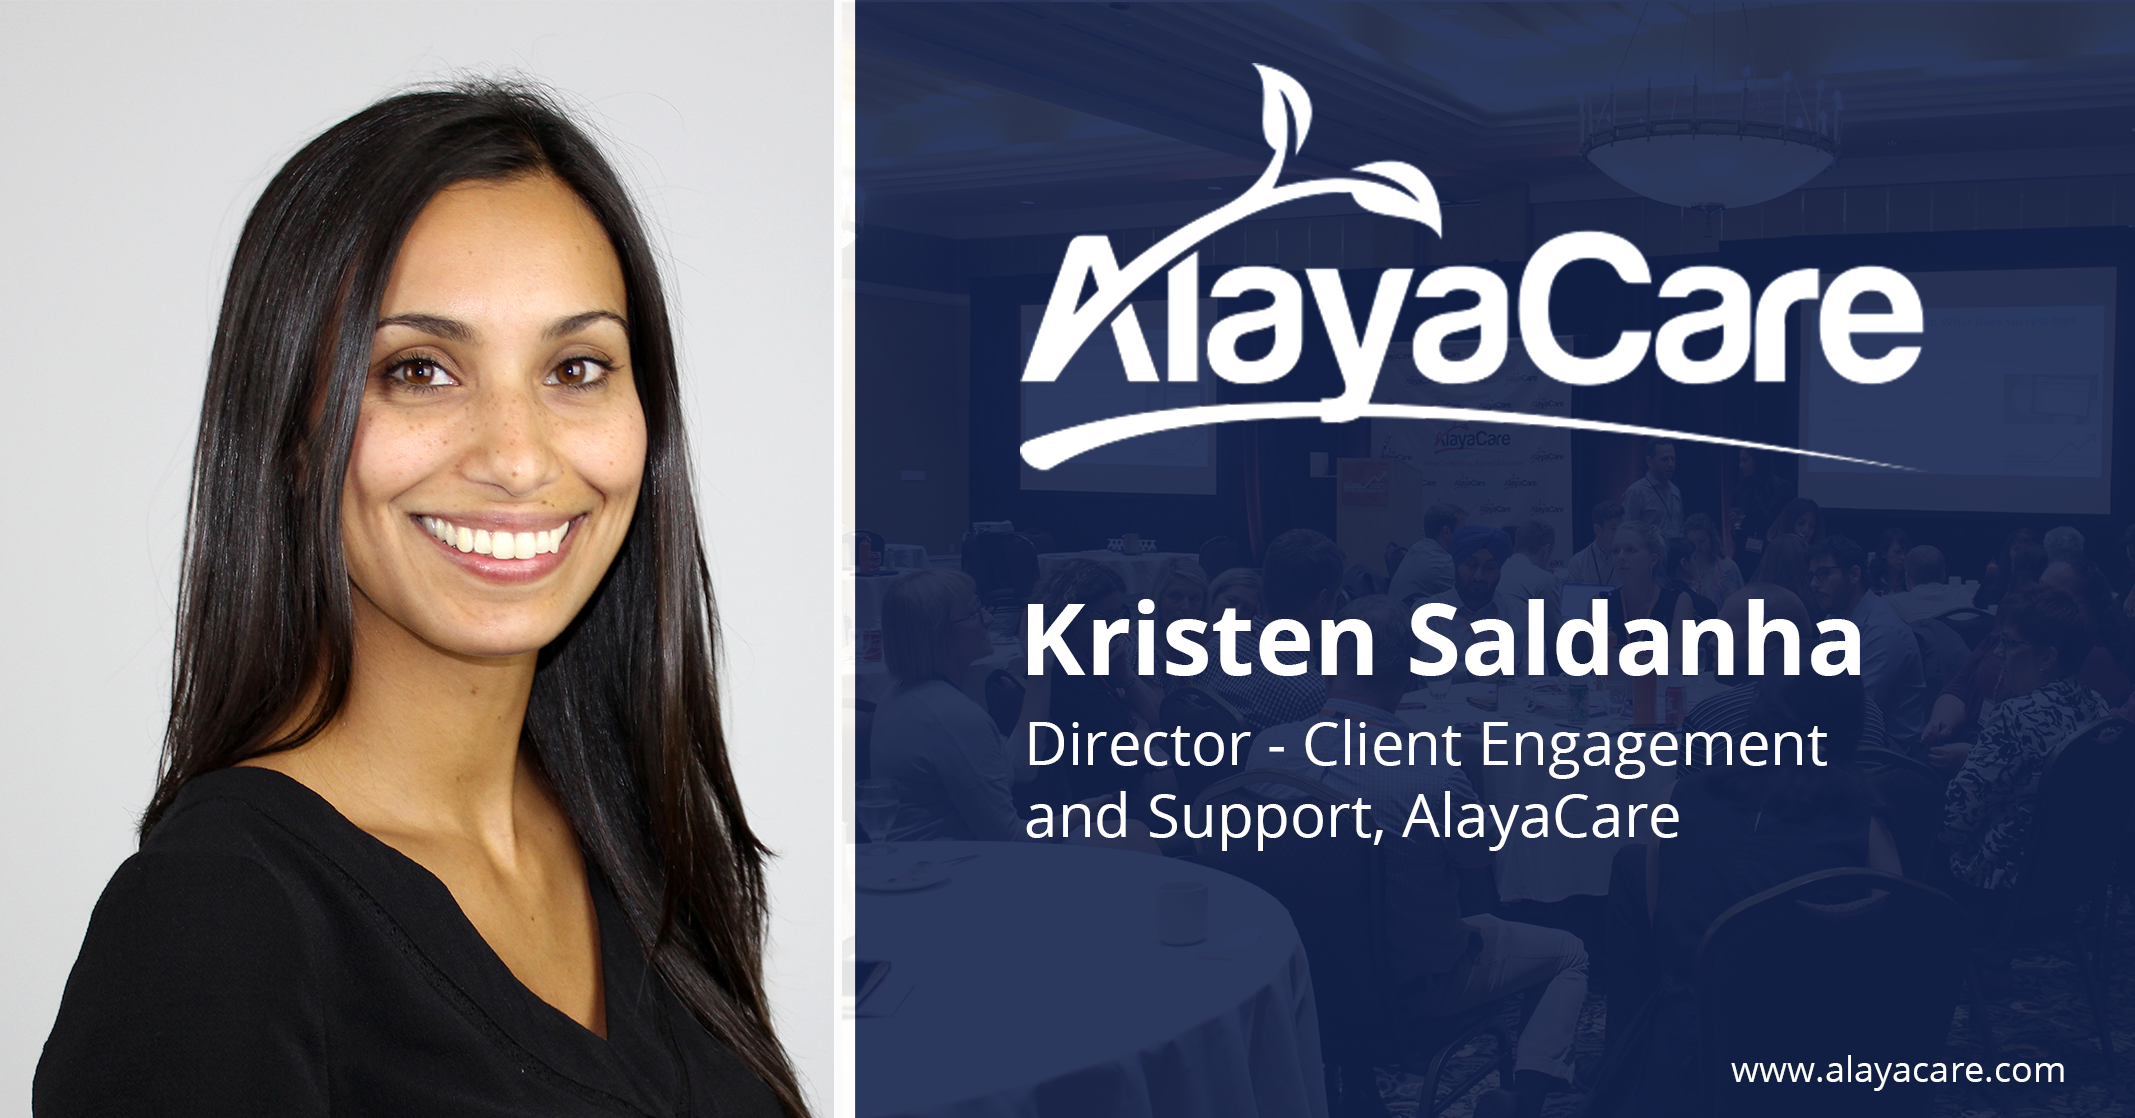 Meet Kristen: Here's Why She Believes AlayaCare Can Make a Difference